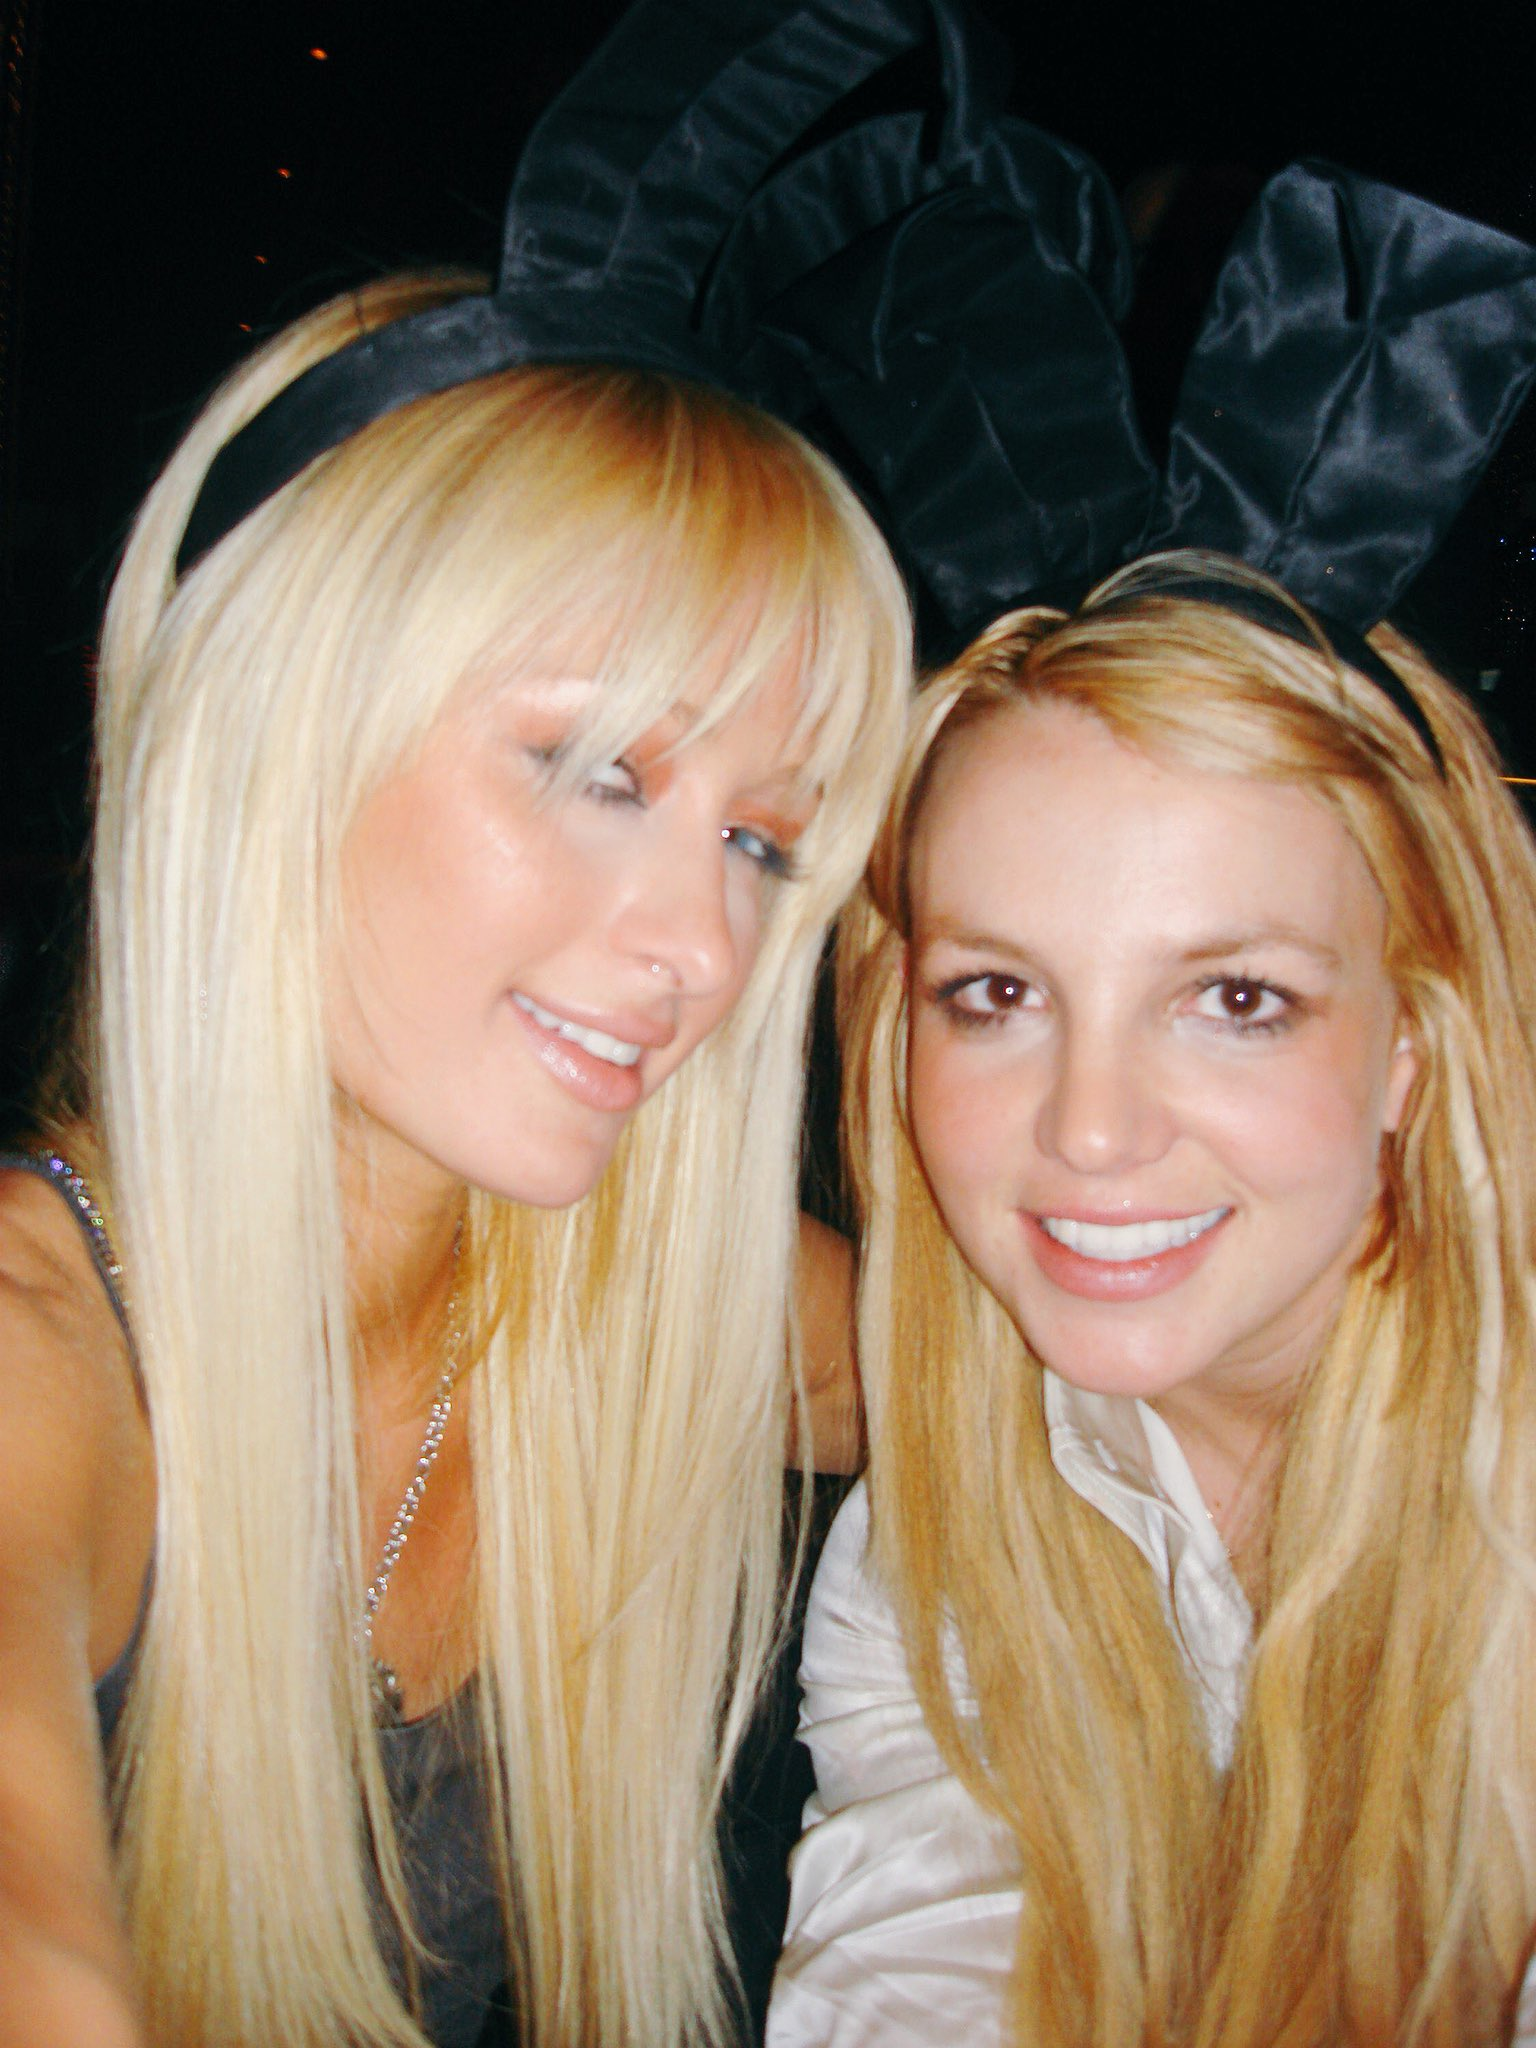 11 years ago today, Me & Britney invented the selfie! https://t.co/1byOU5Gp8J